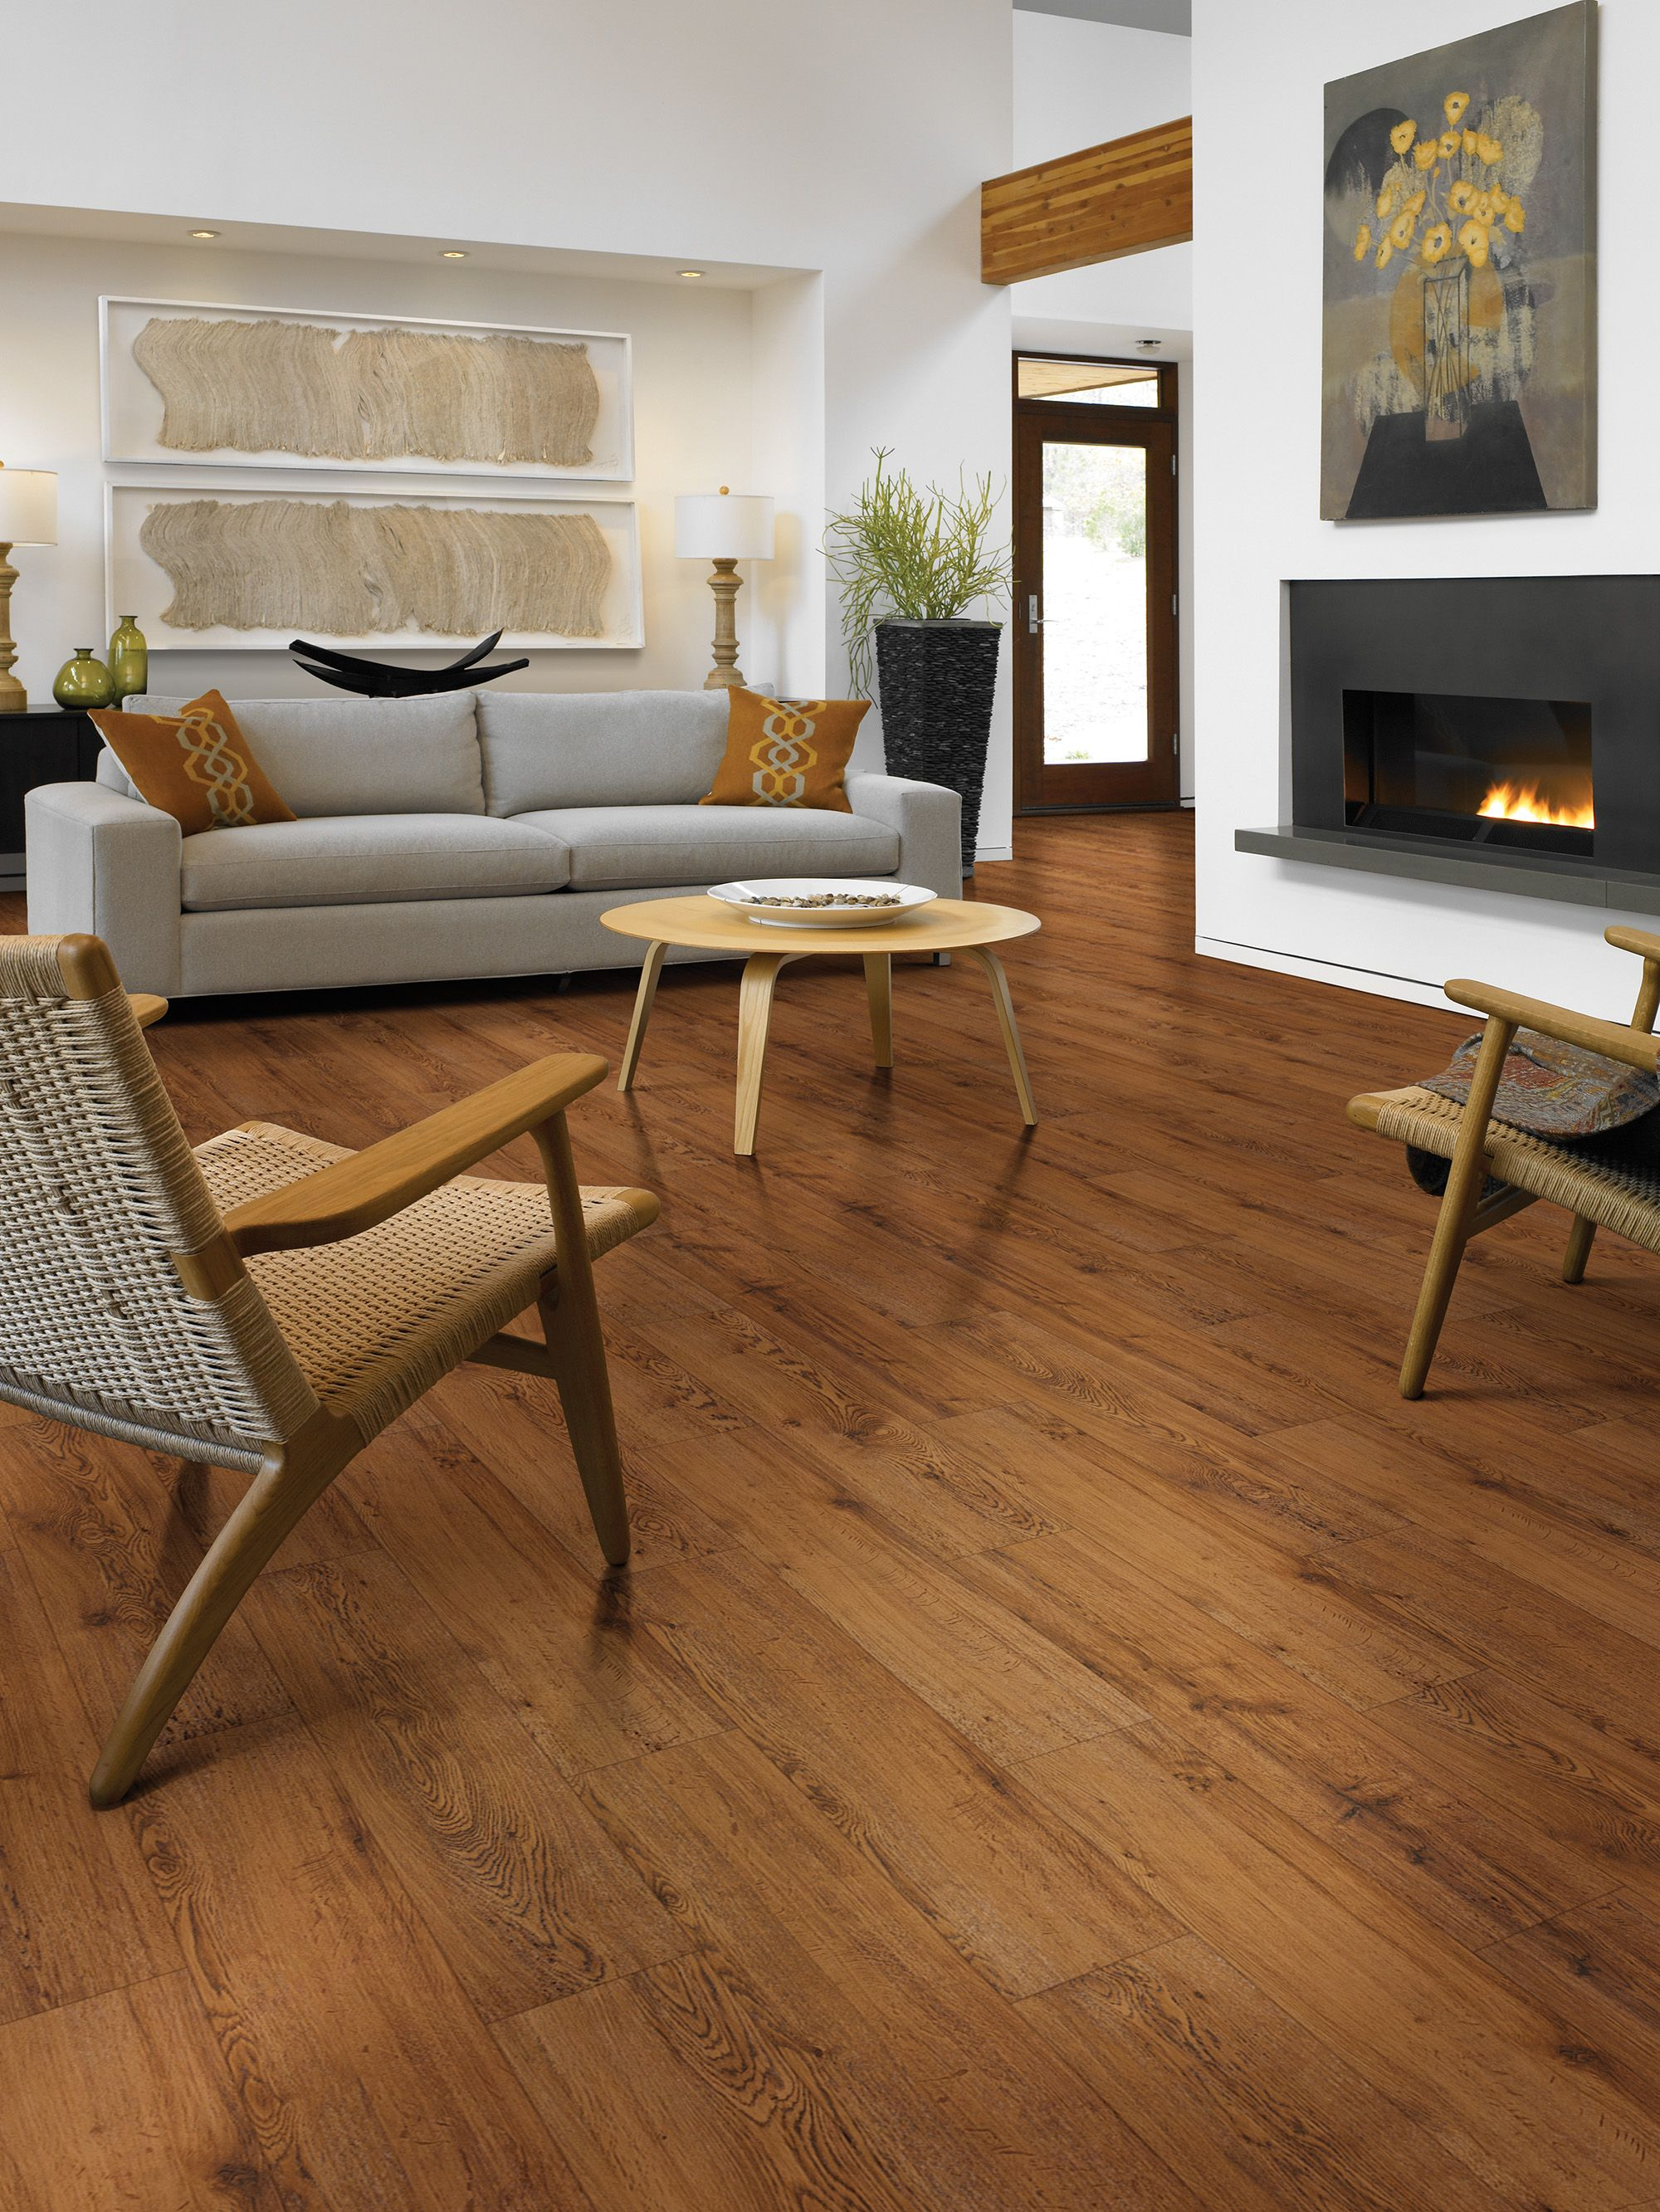 Sumter Plank LVT Flooring in the color Gunstock Oak